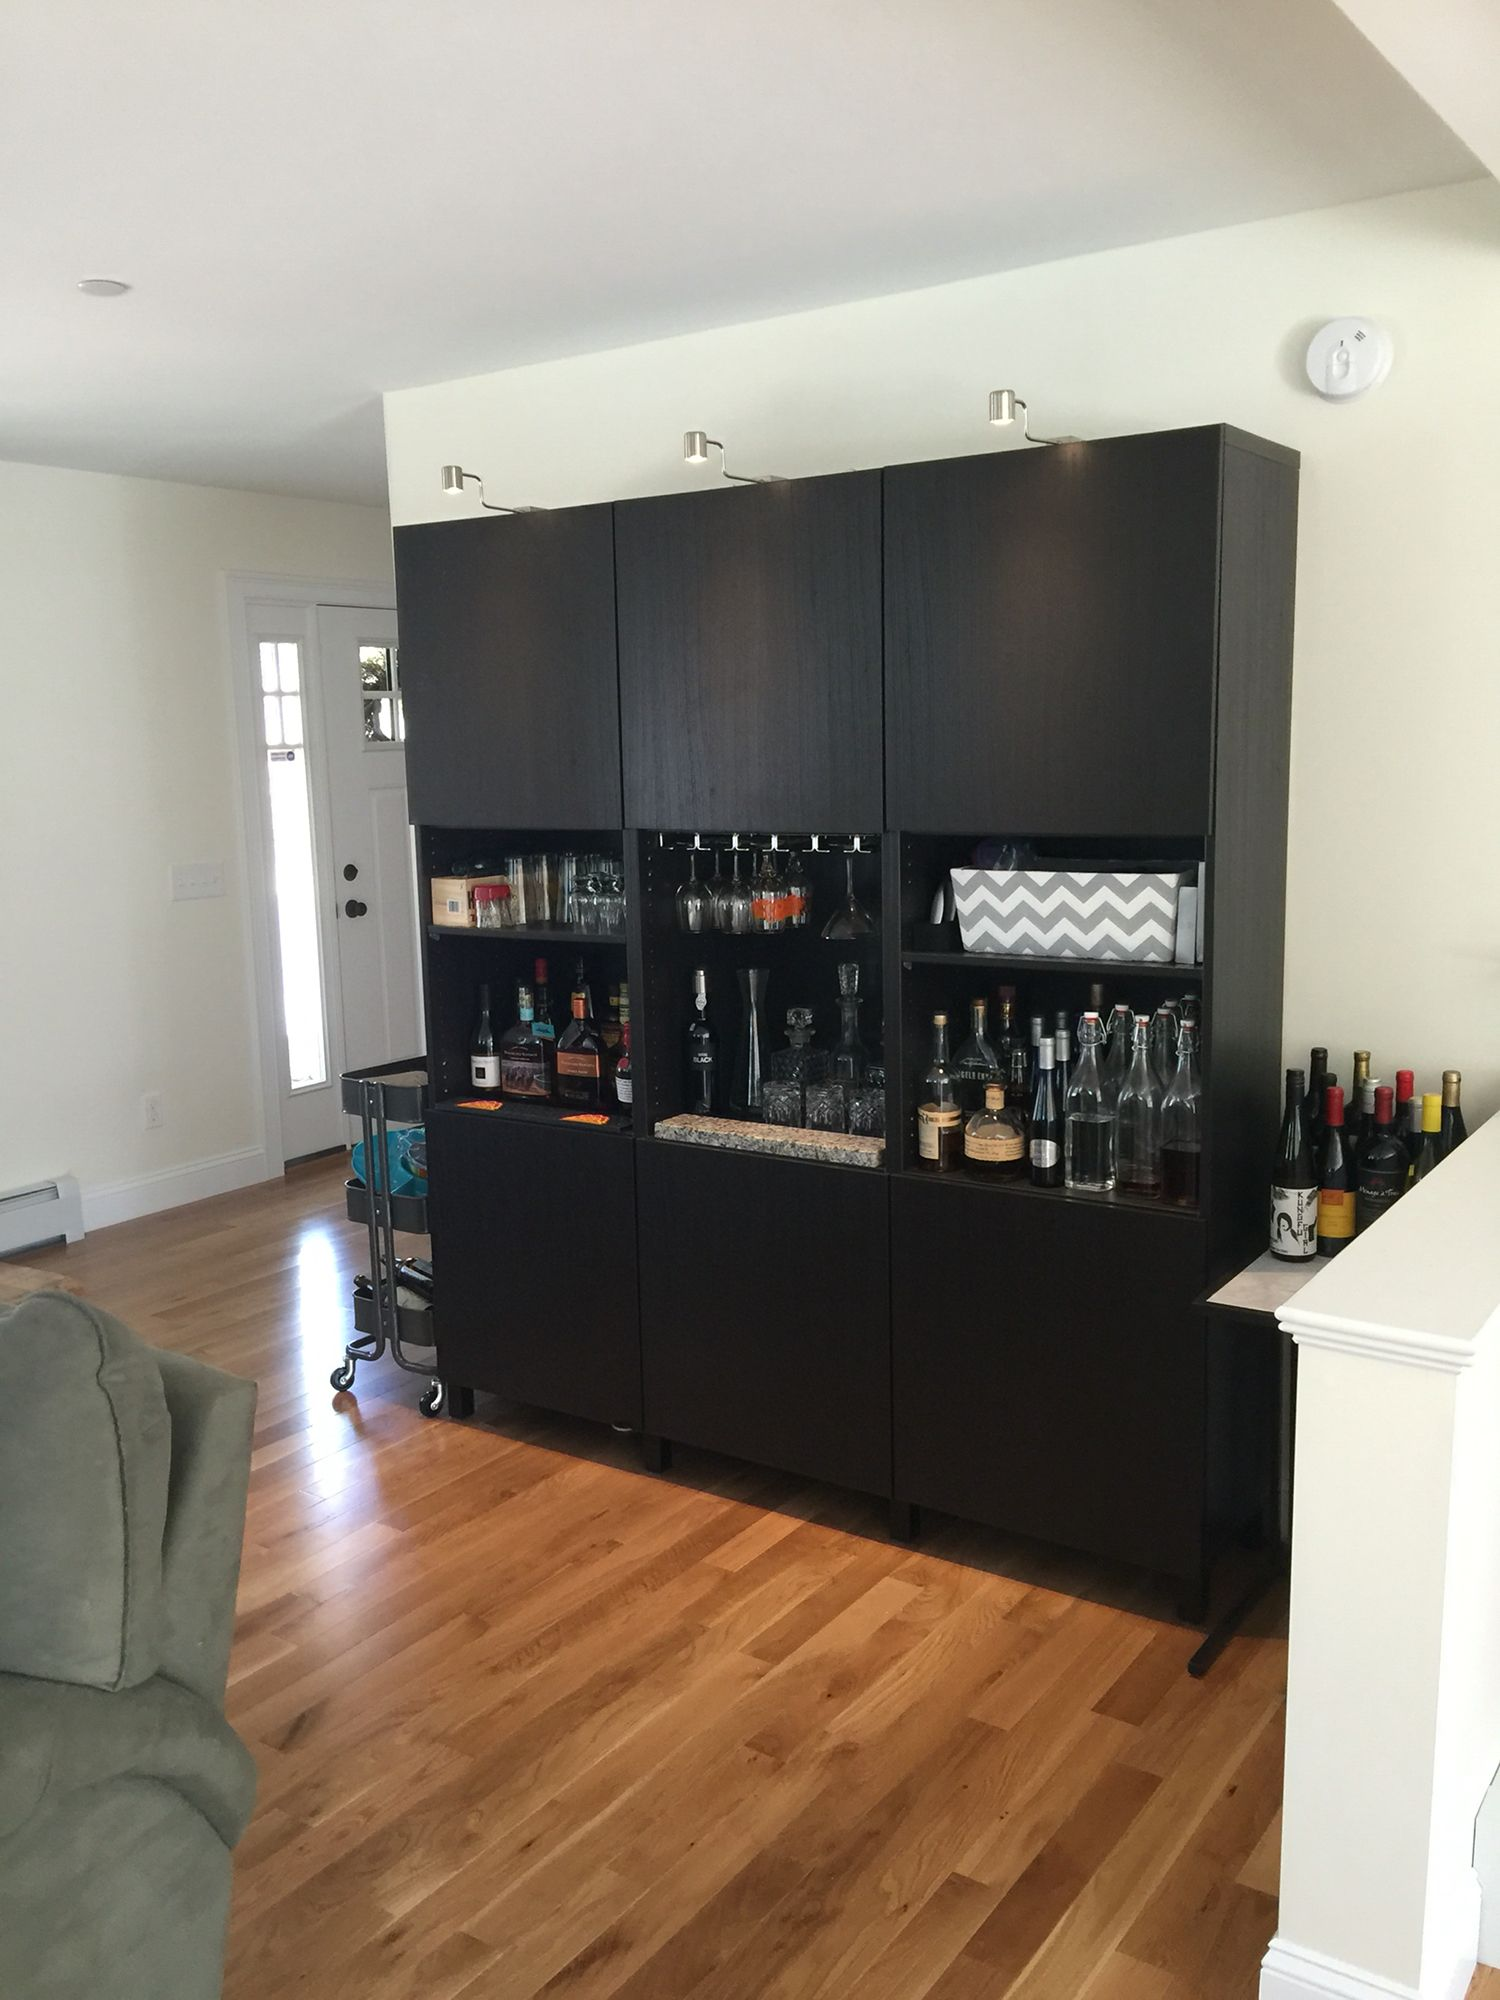 IKEA besta bar and storage area | storage and organization projects ...